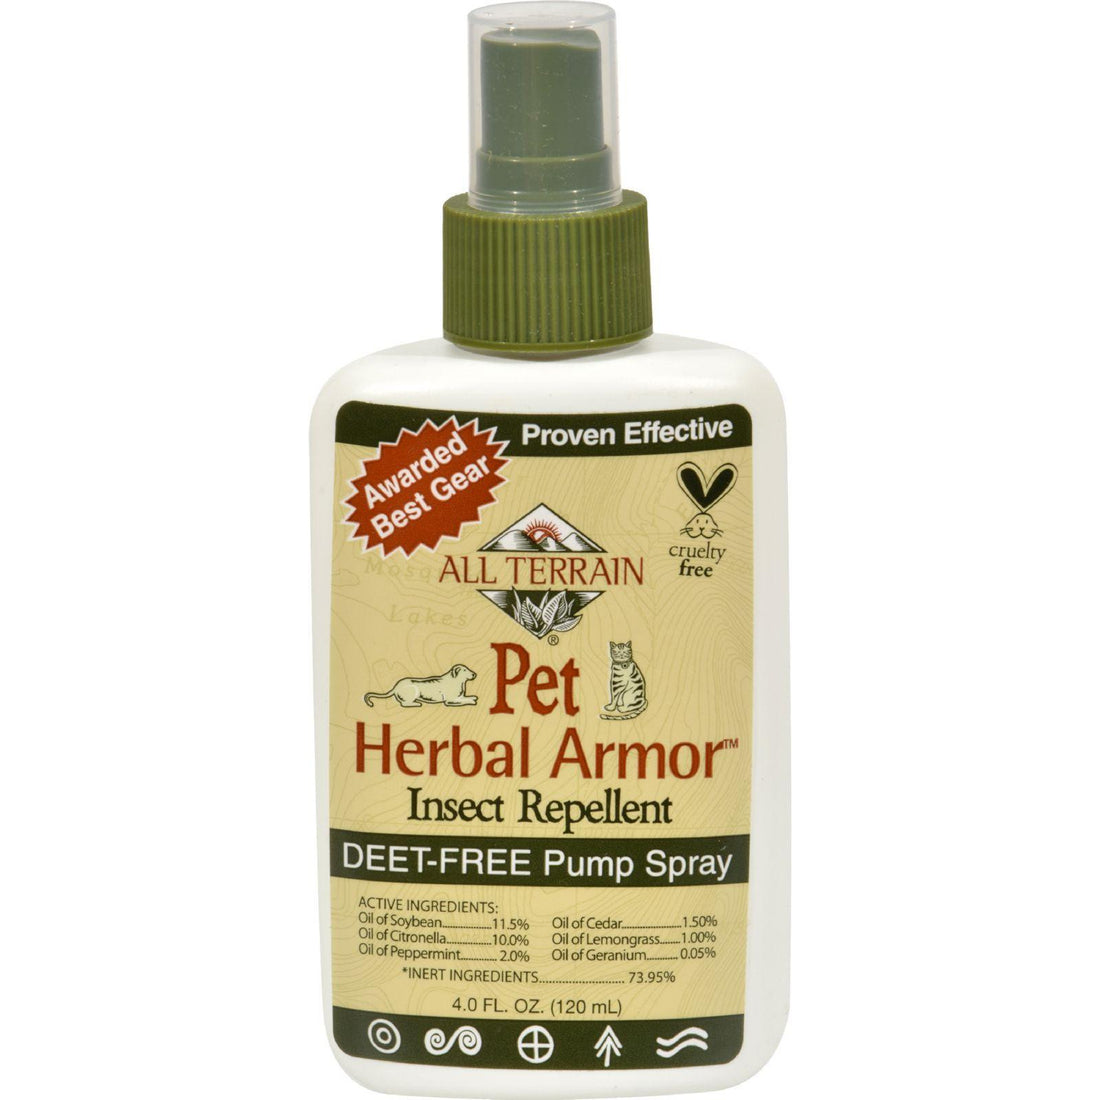 Mother Mantis: All Terrain Pet Herbal Armor Insect Repellent - 4 Fl Oz All Terrain